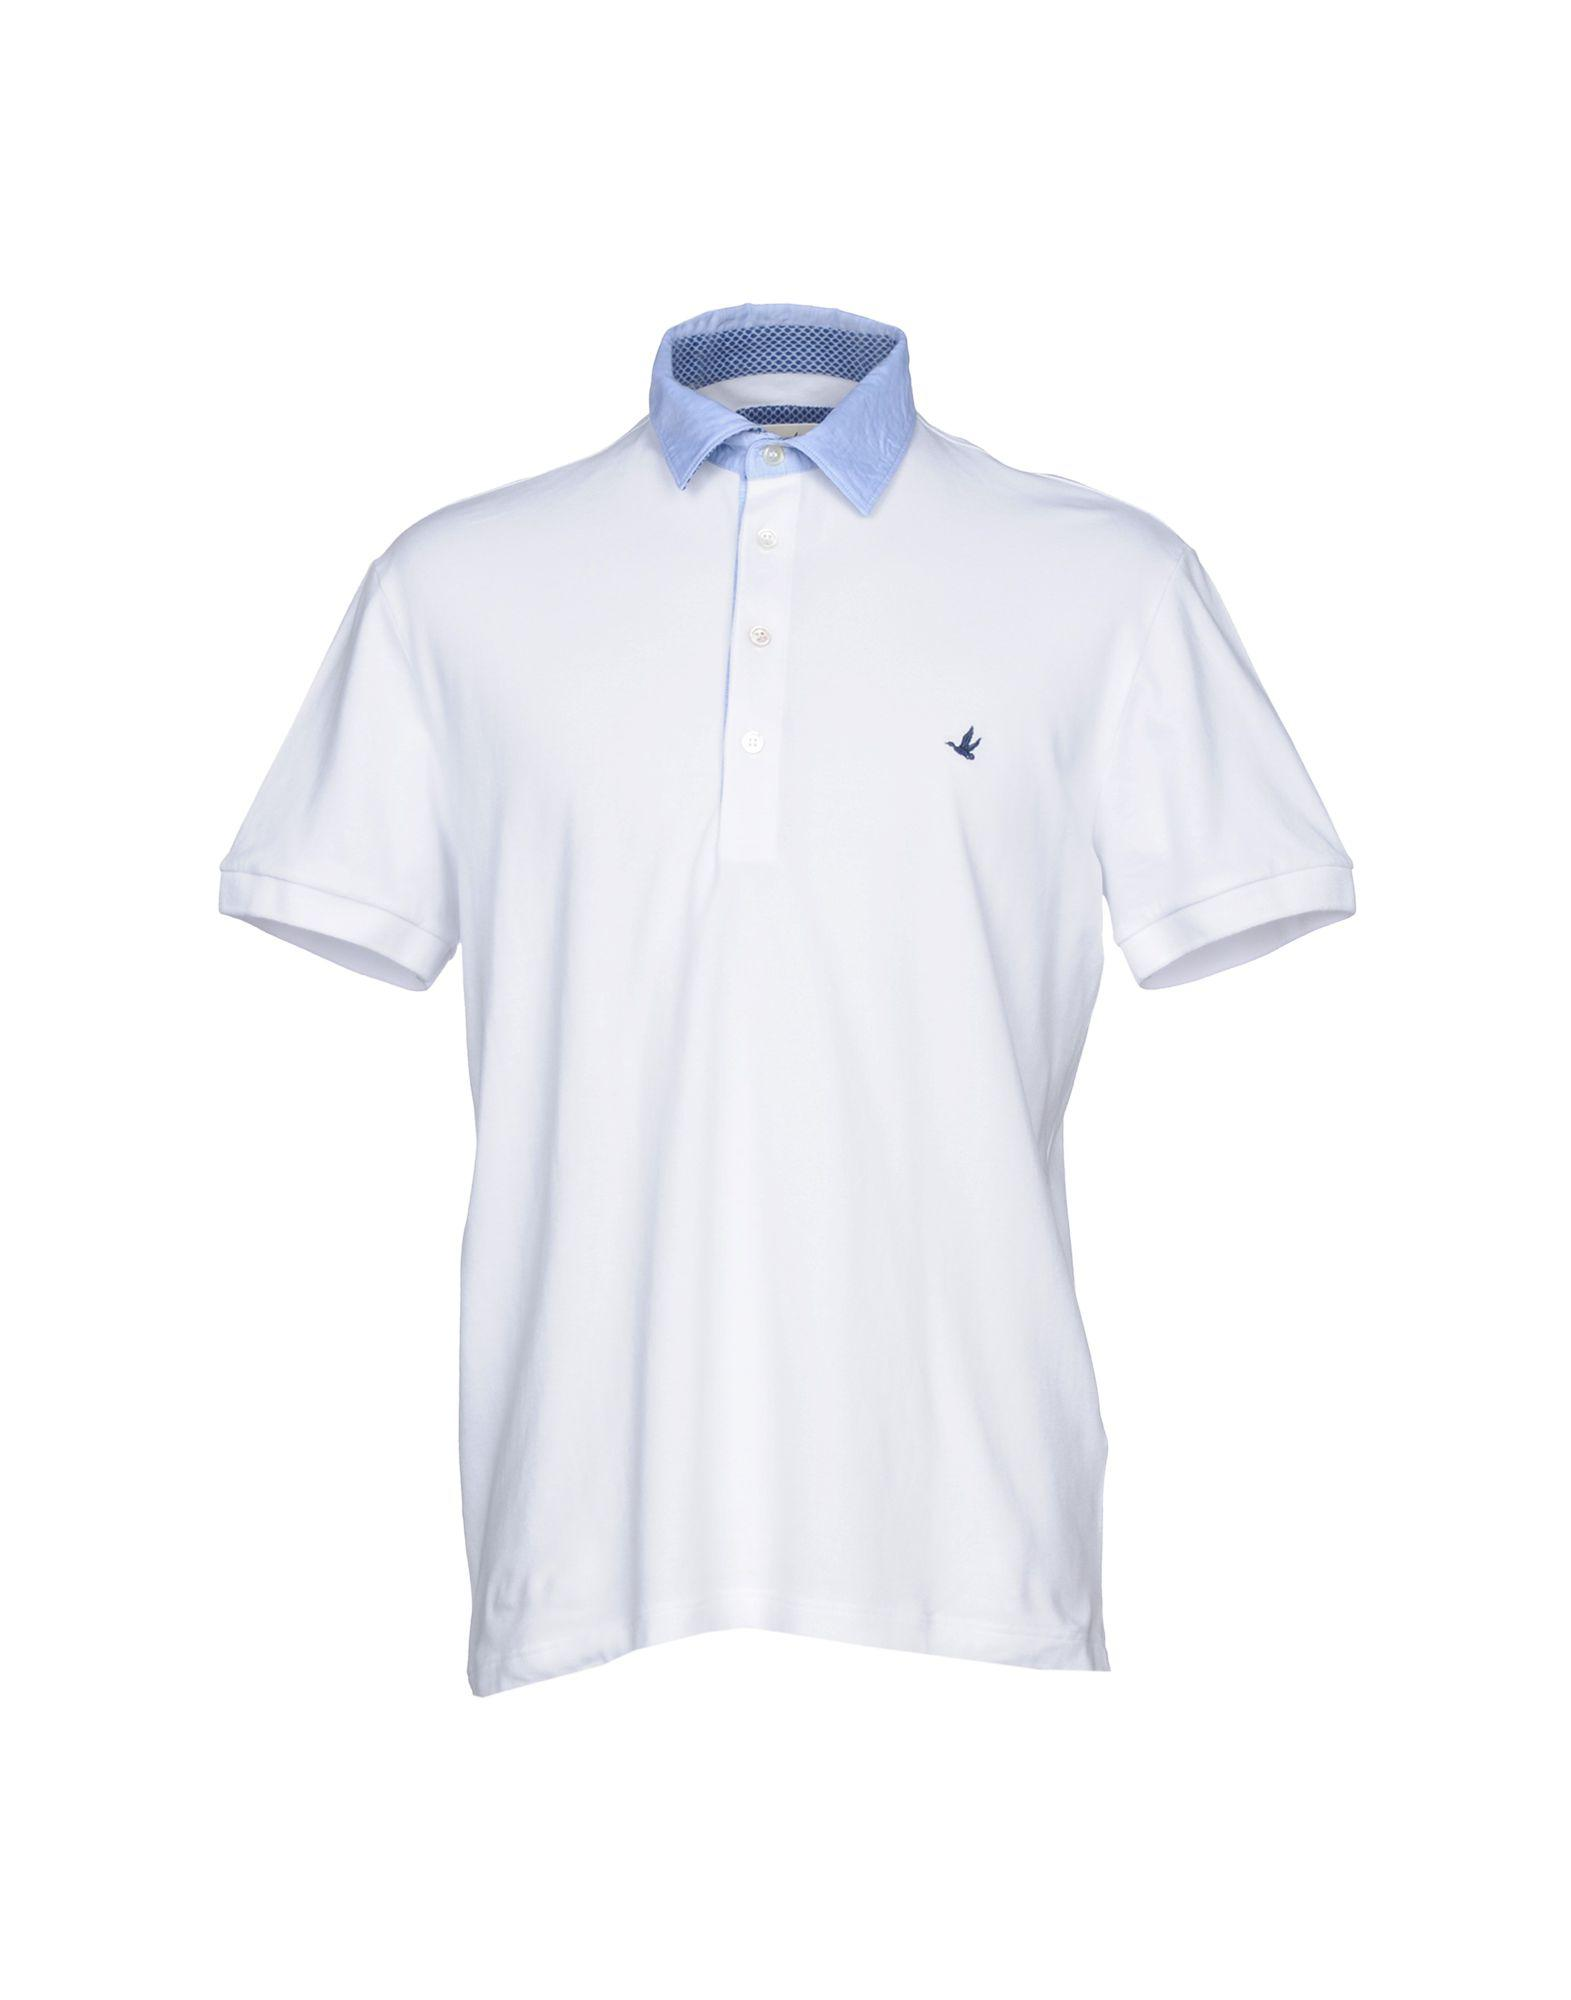 Polo White Men Brooksfield Lyst For In Shirt HqRYn5Iw